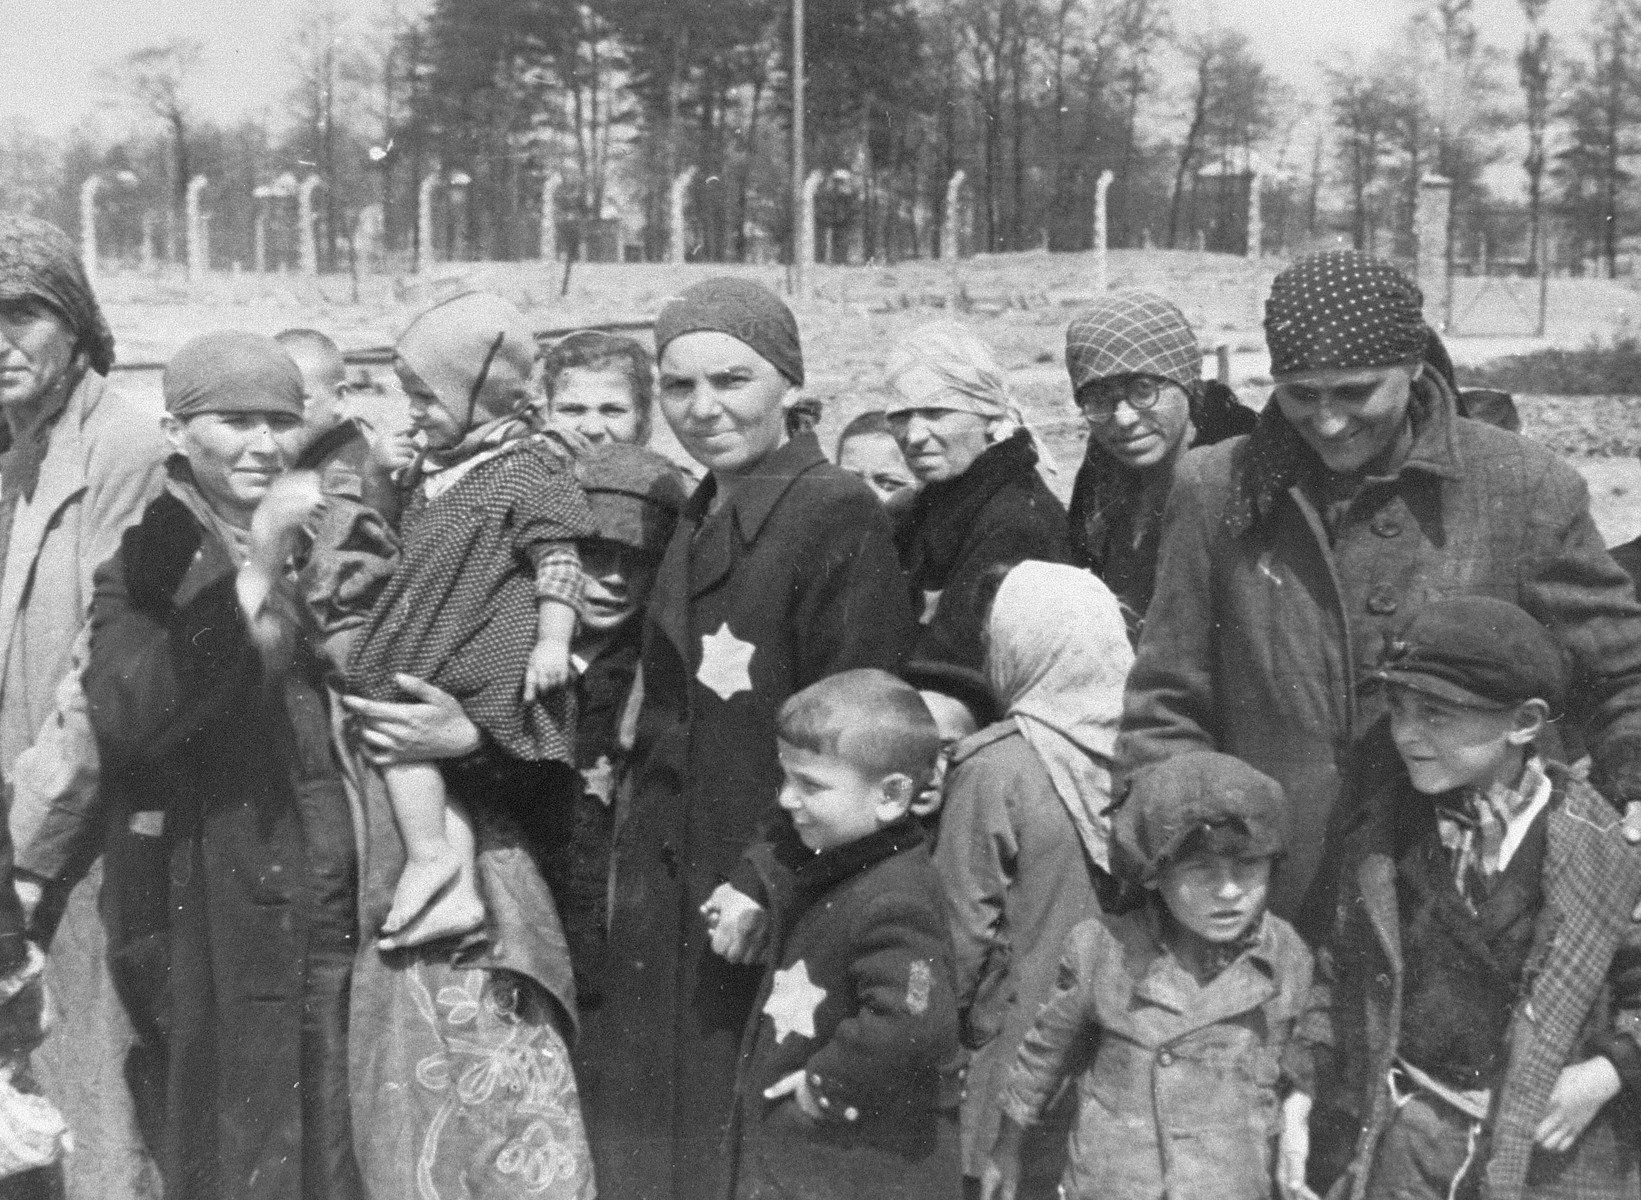 Jewish women and children from Subcarpathian Rus who have been selected for death at Auschwitz-Birkenau, wait to be taken to the gas chambers.